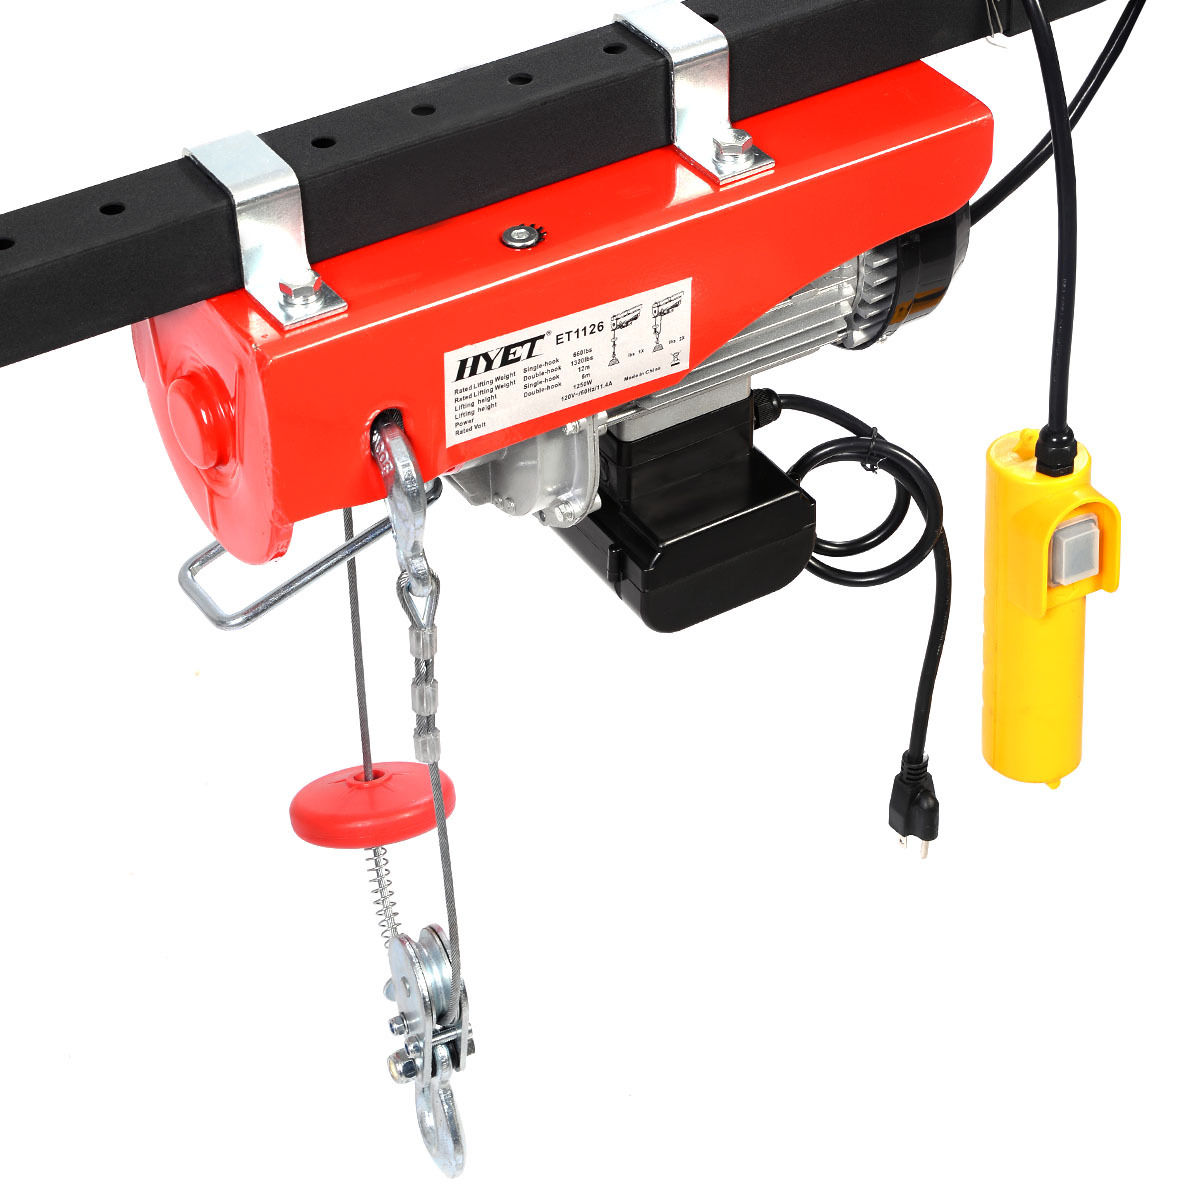 GHP 1320Lbs Double Line Lift Mini Automatic Electric Wire...